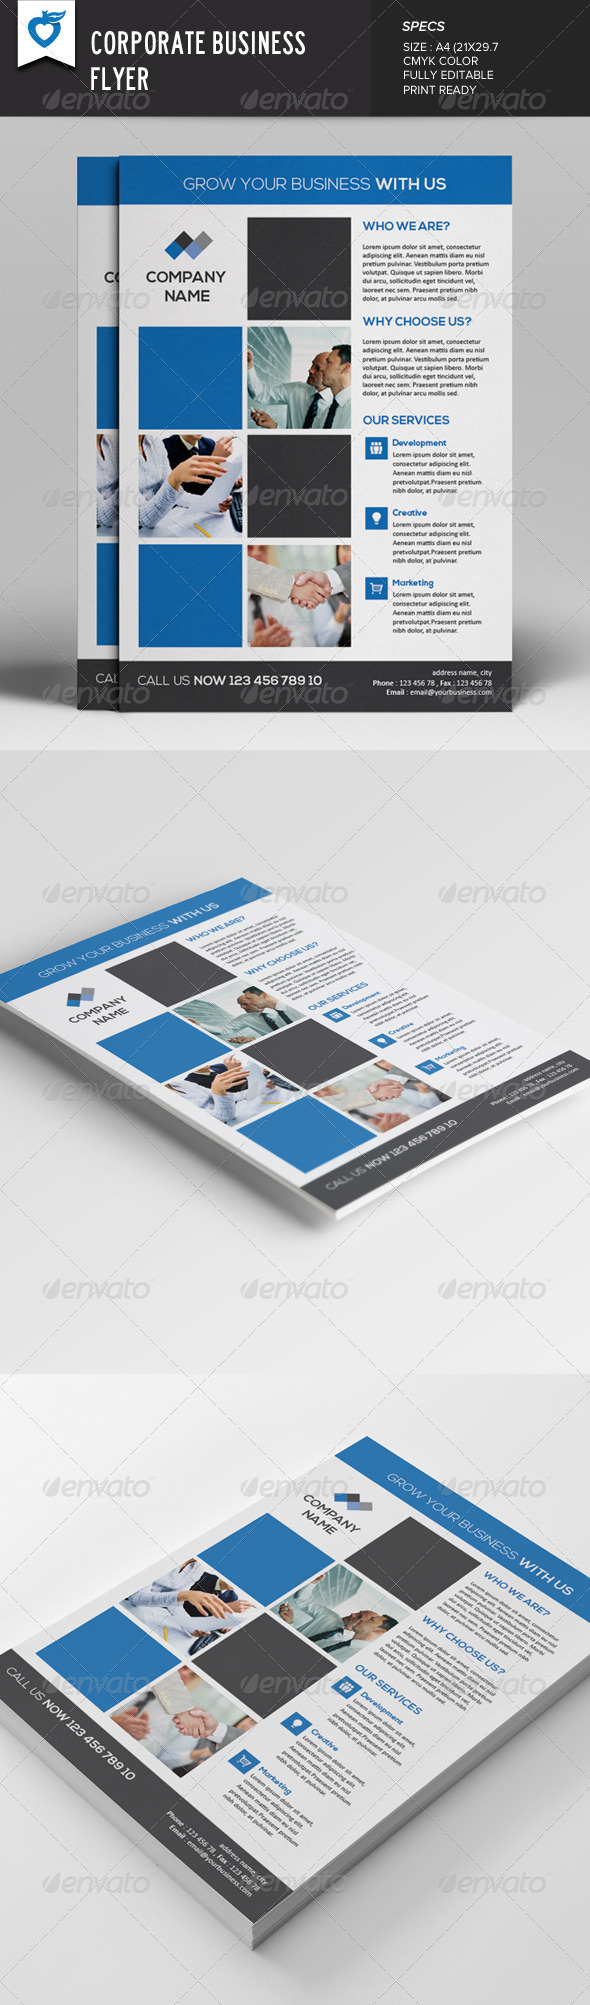 GraphicRiver Corporate Business Flyer v5 7872565